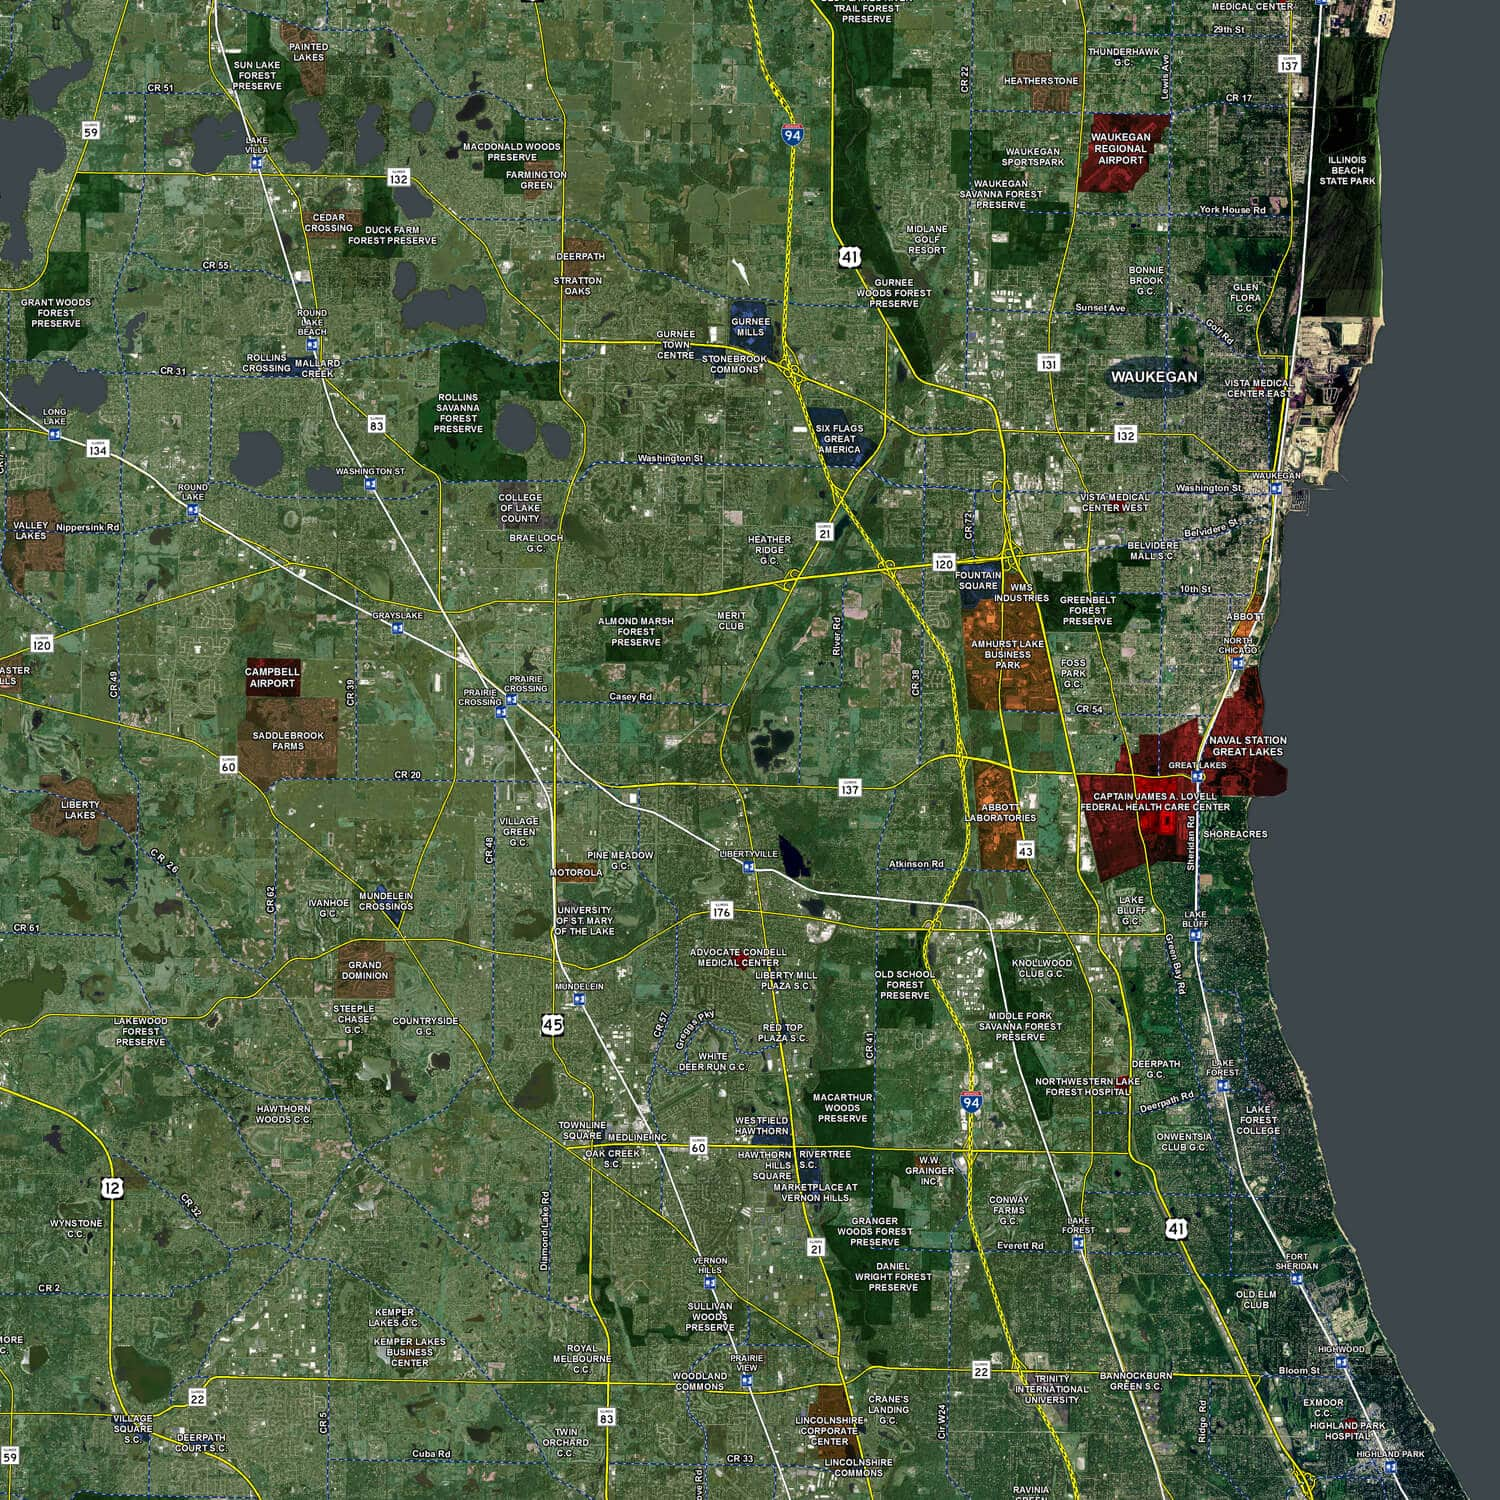 chicago aerial wall mural landiscor real estate mapping 2015 chicago wall map mural standard mini print scale 48 x62